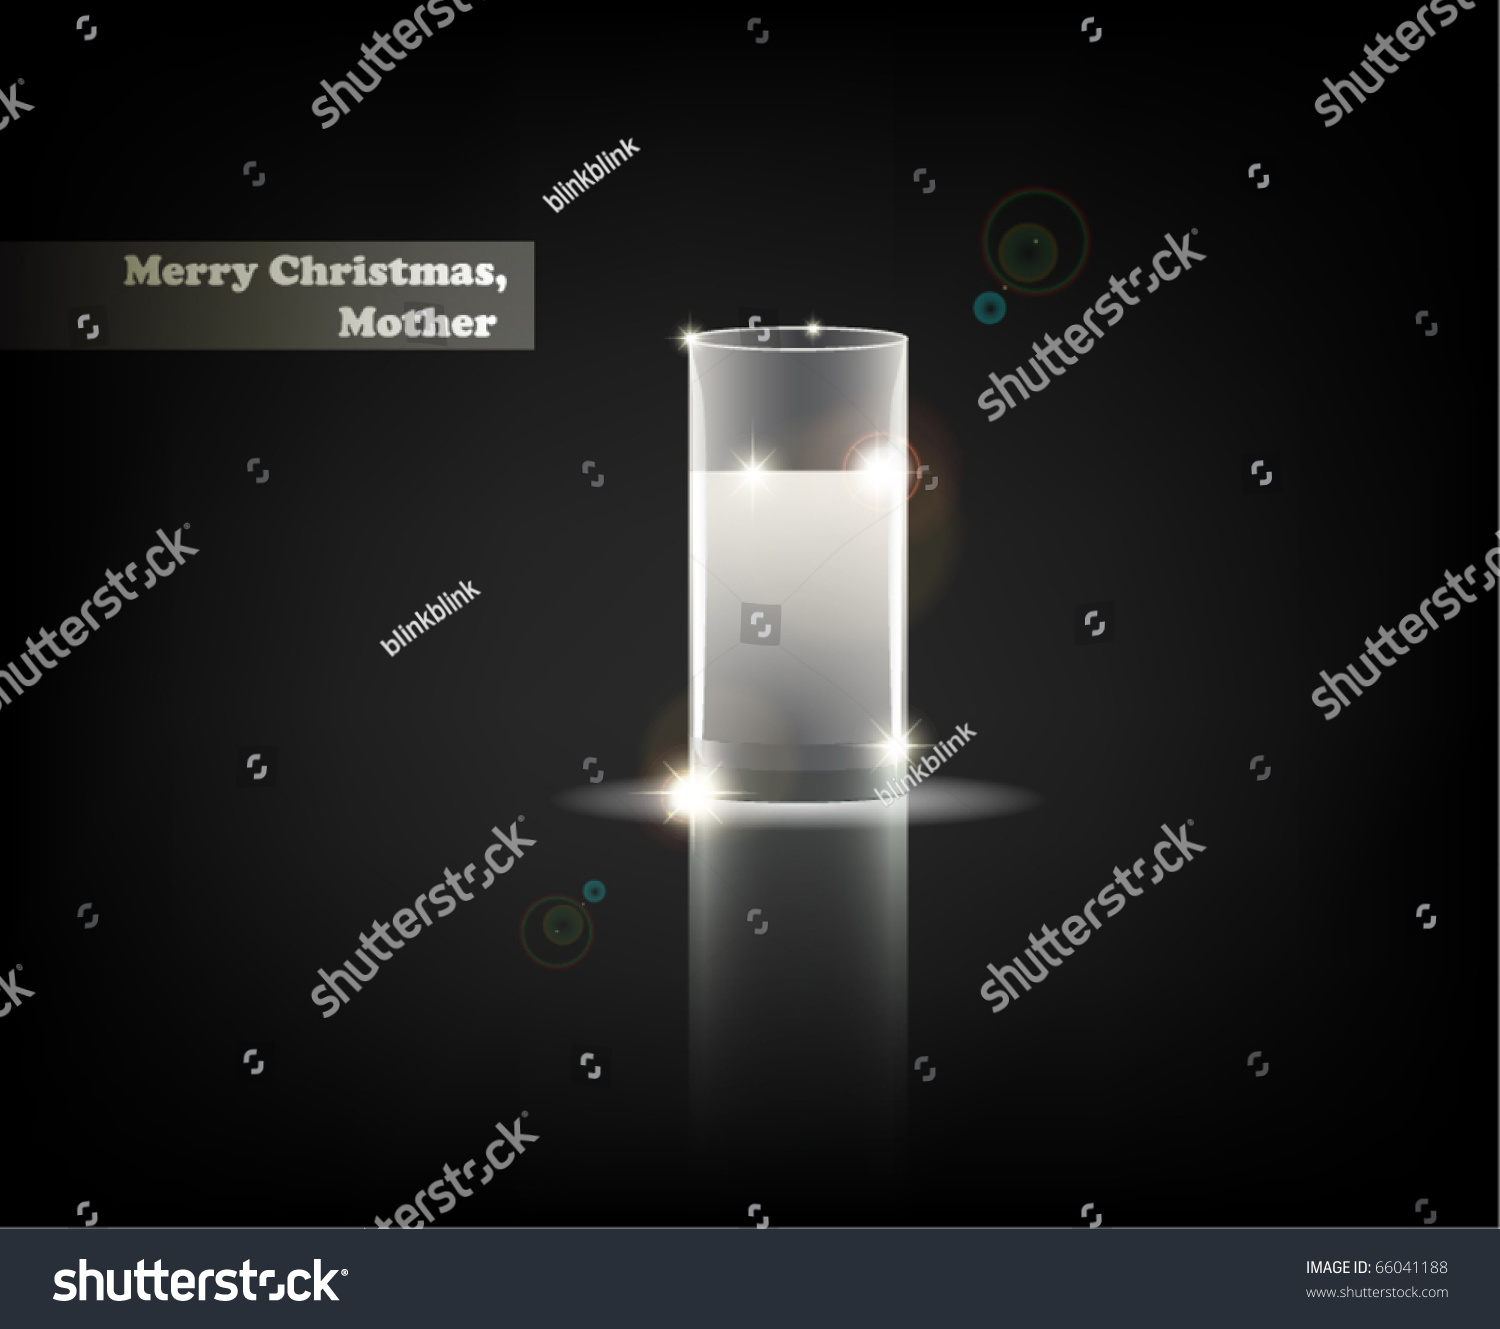 Merry Christmas Mother Serial Minimalistic Contemporary Stock Vector ...